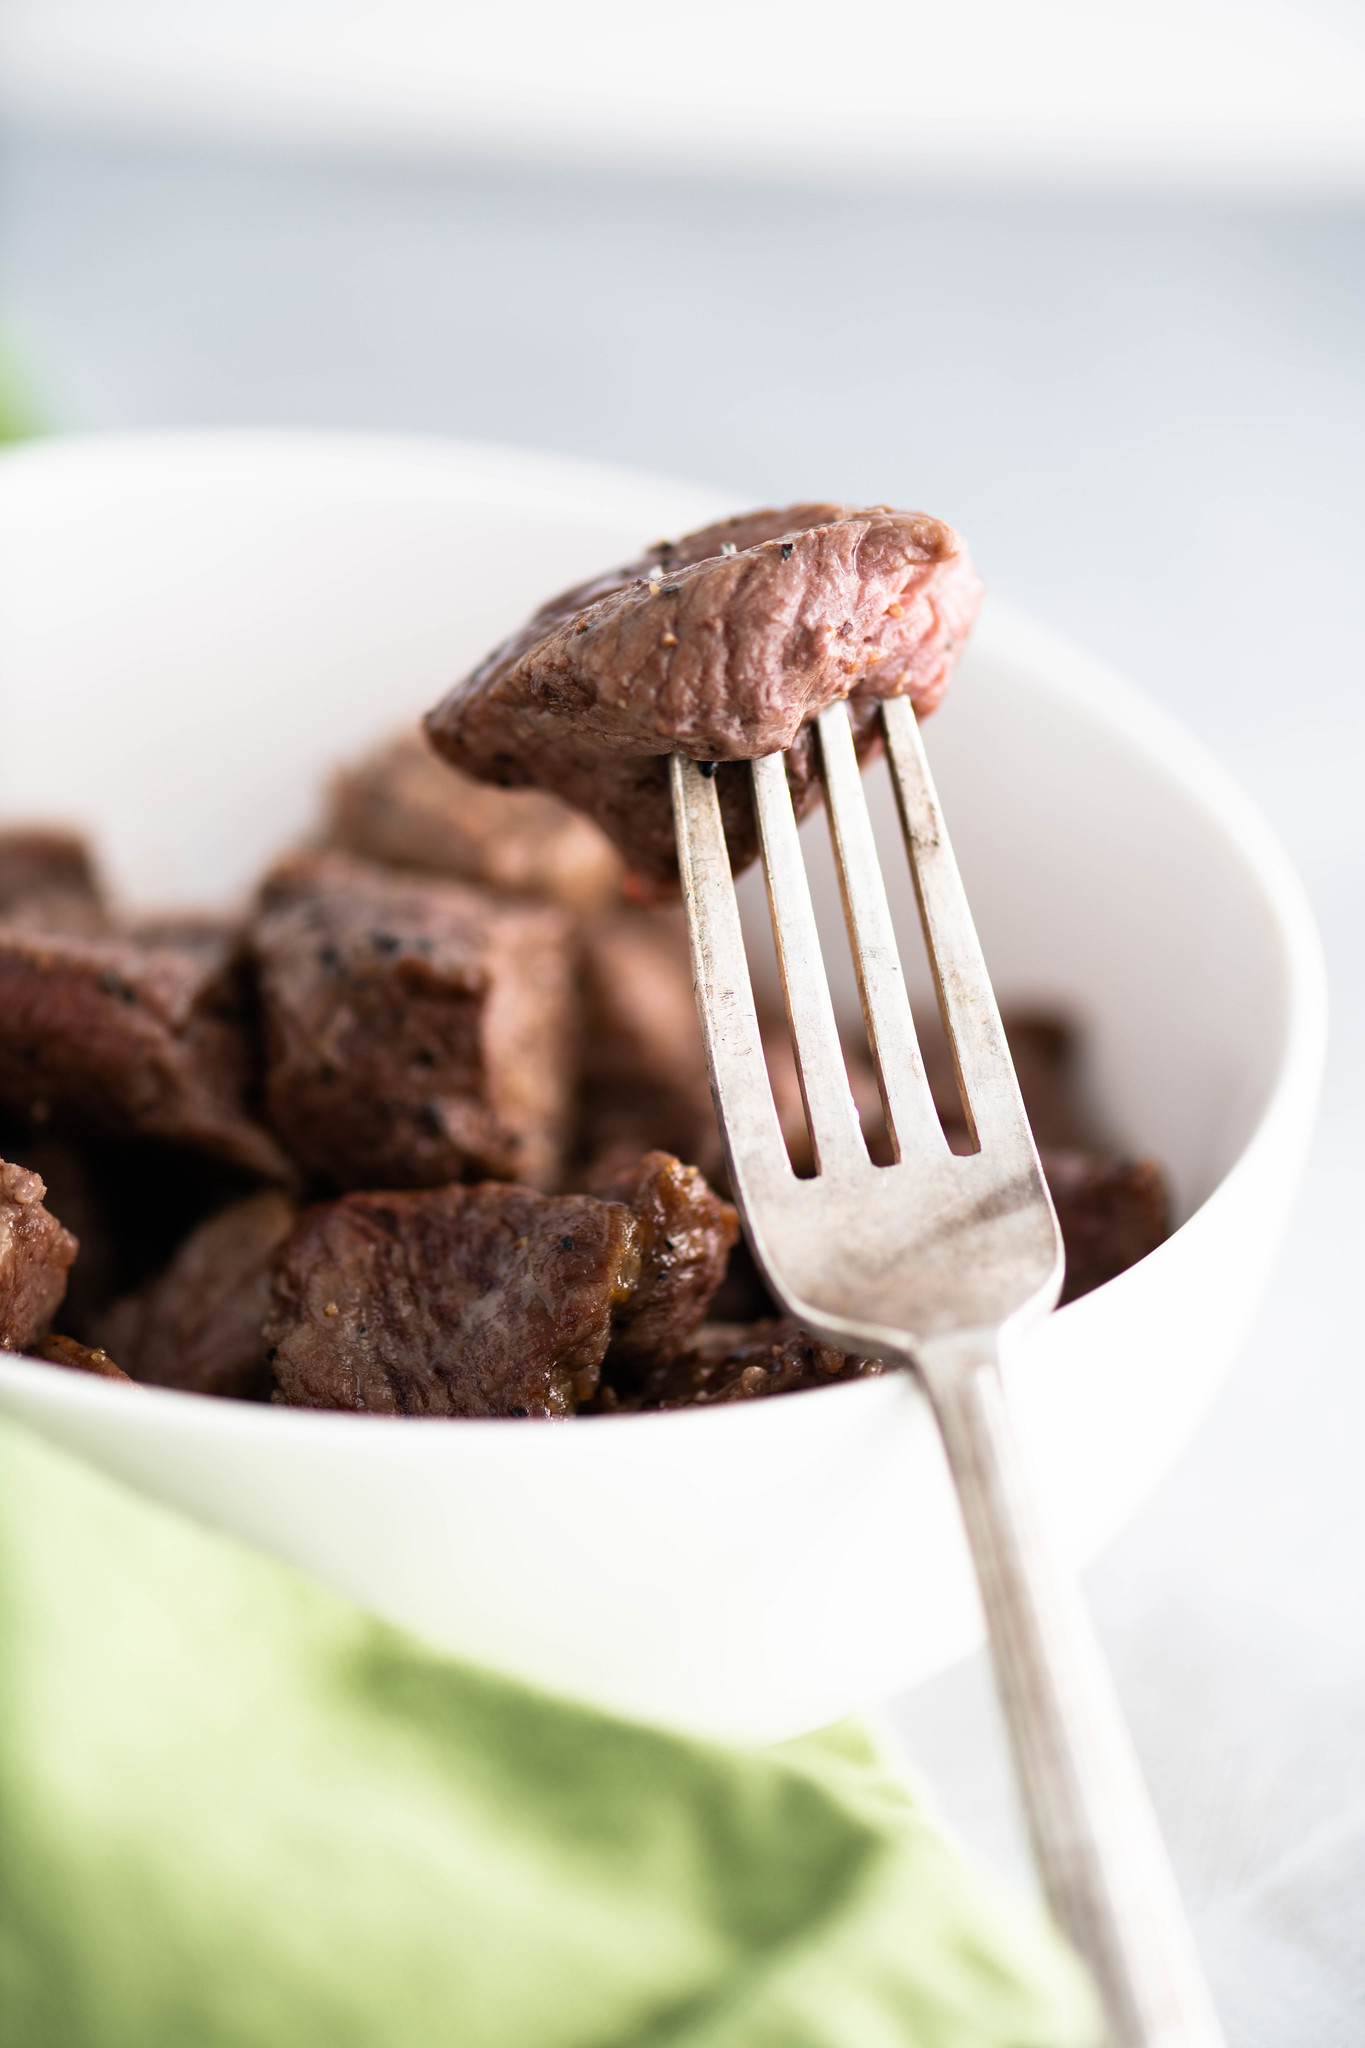 Whether you need a quick appetizer or dinner, these Air Fryer Steak Bites will save the day. Done in minutes and super tender.